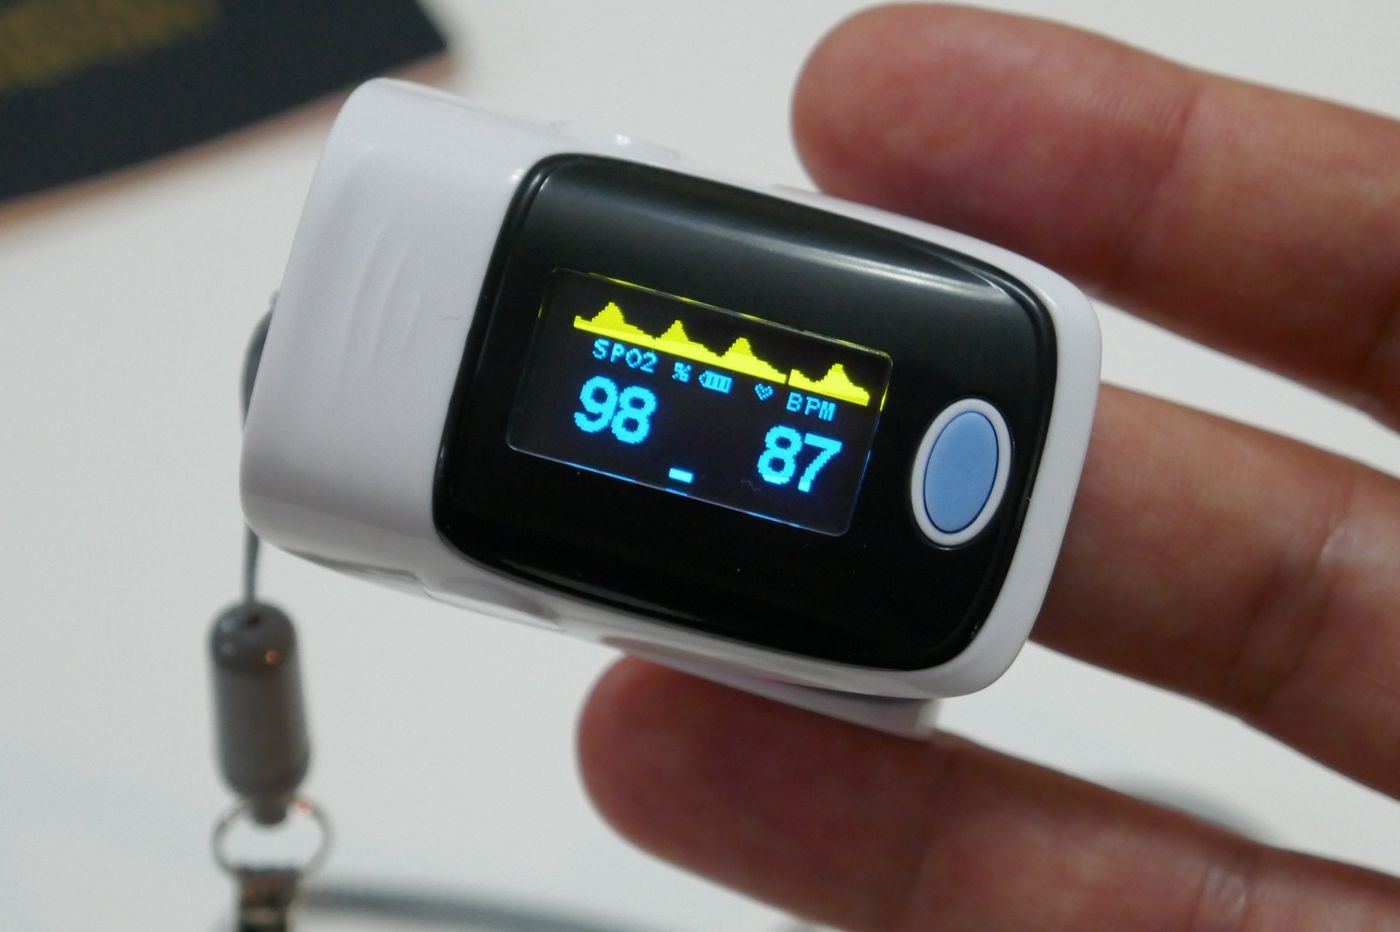 What's a pulse oximeter and do you need one to monitor for coronavirus?